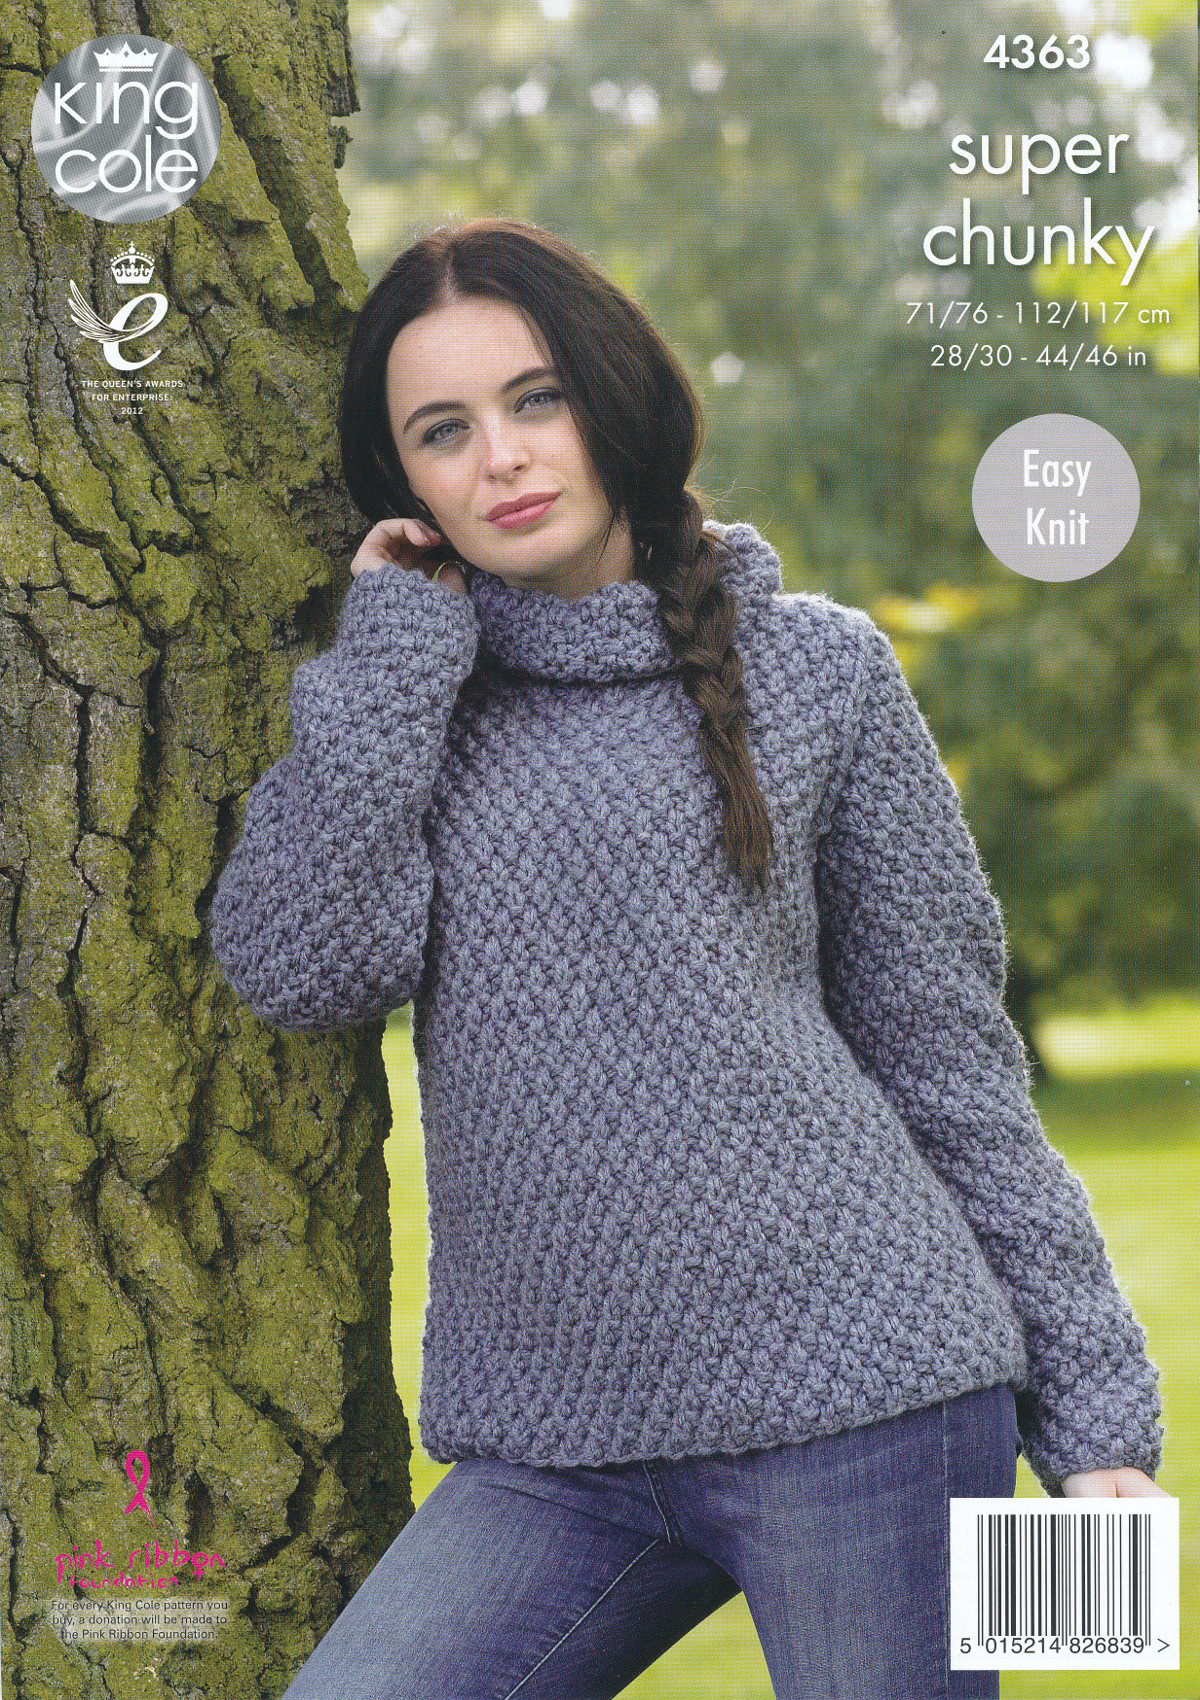 Super Chunky Jumper Knitting Pattern : Ladies Super Chunky Knitting Pattern King Cole Easy Knit Sweater & Jacket...